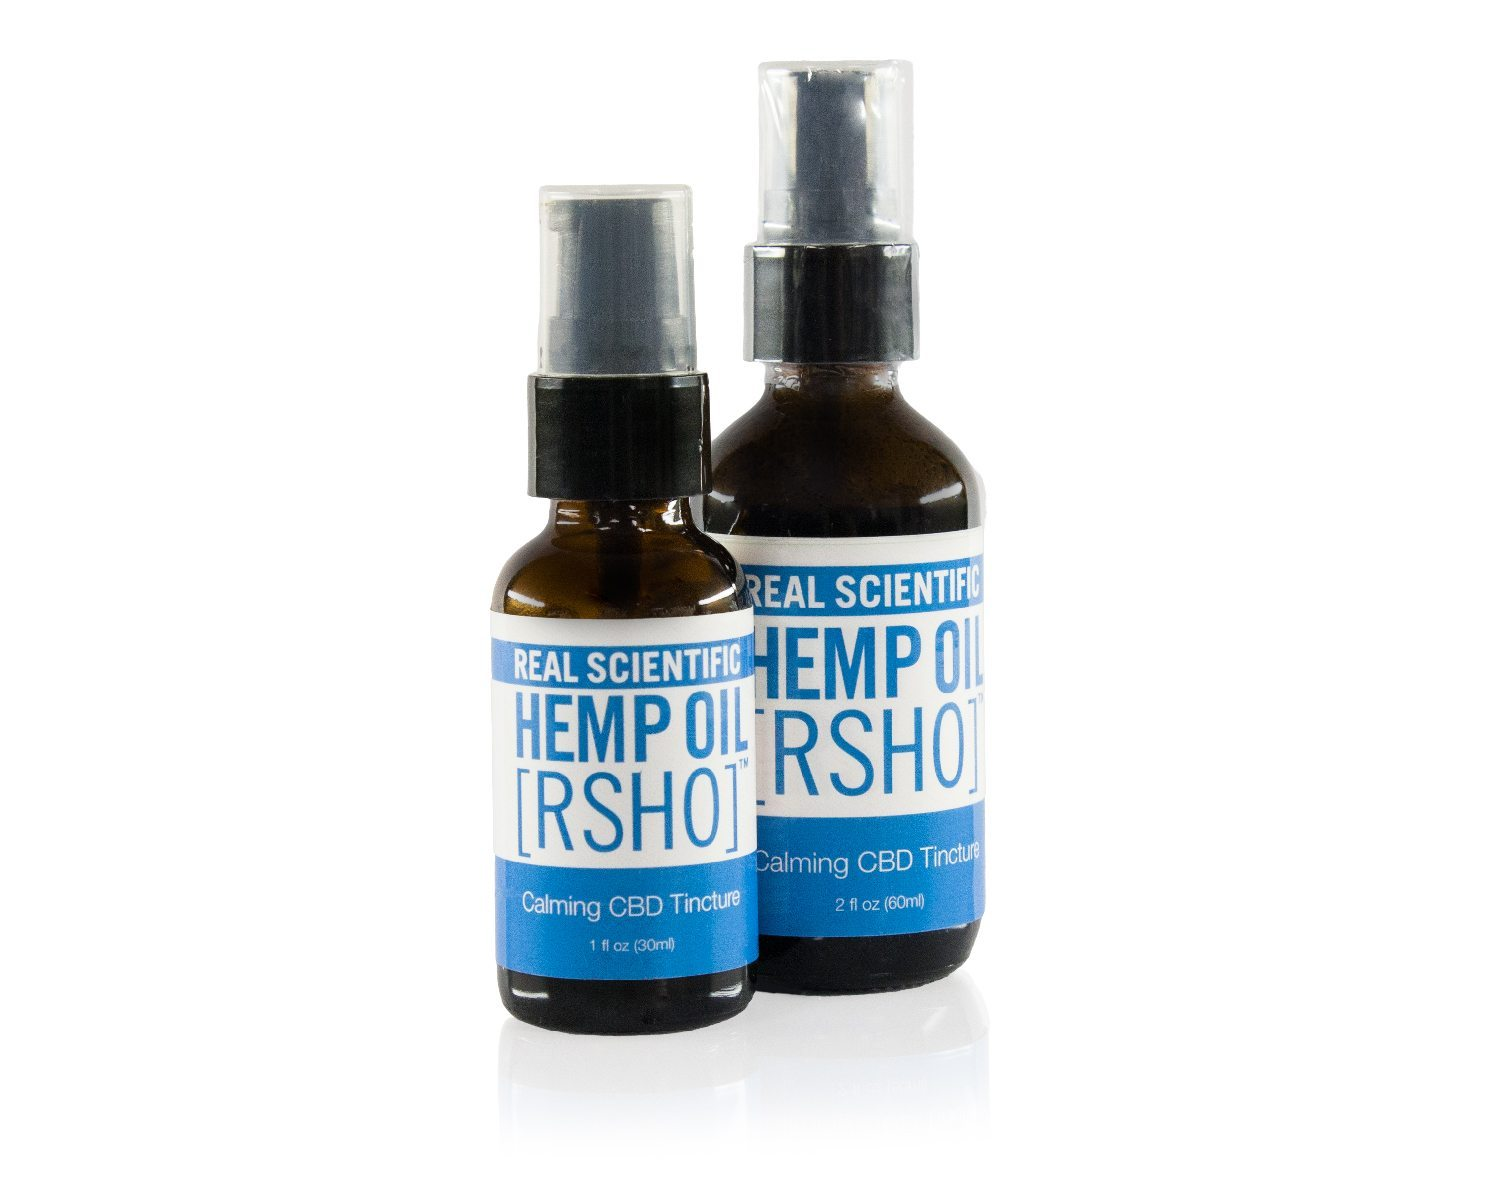 Real Scientific Hemp Oil™ [RSHO]™ new cannabidiol (CBD) hemp oil whole food in choice of original, cinnamon or peppermint flavor tinctures.)